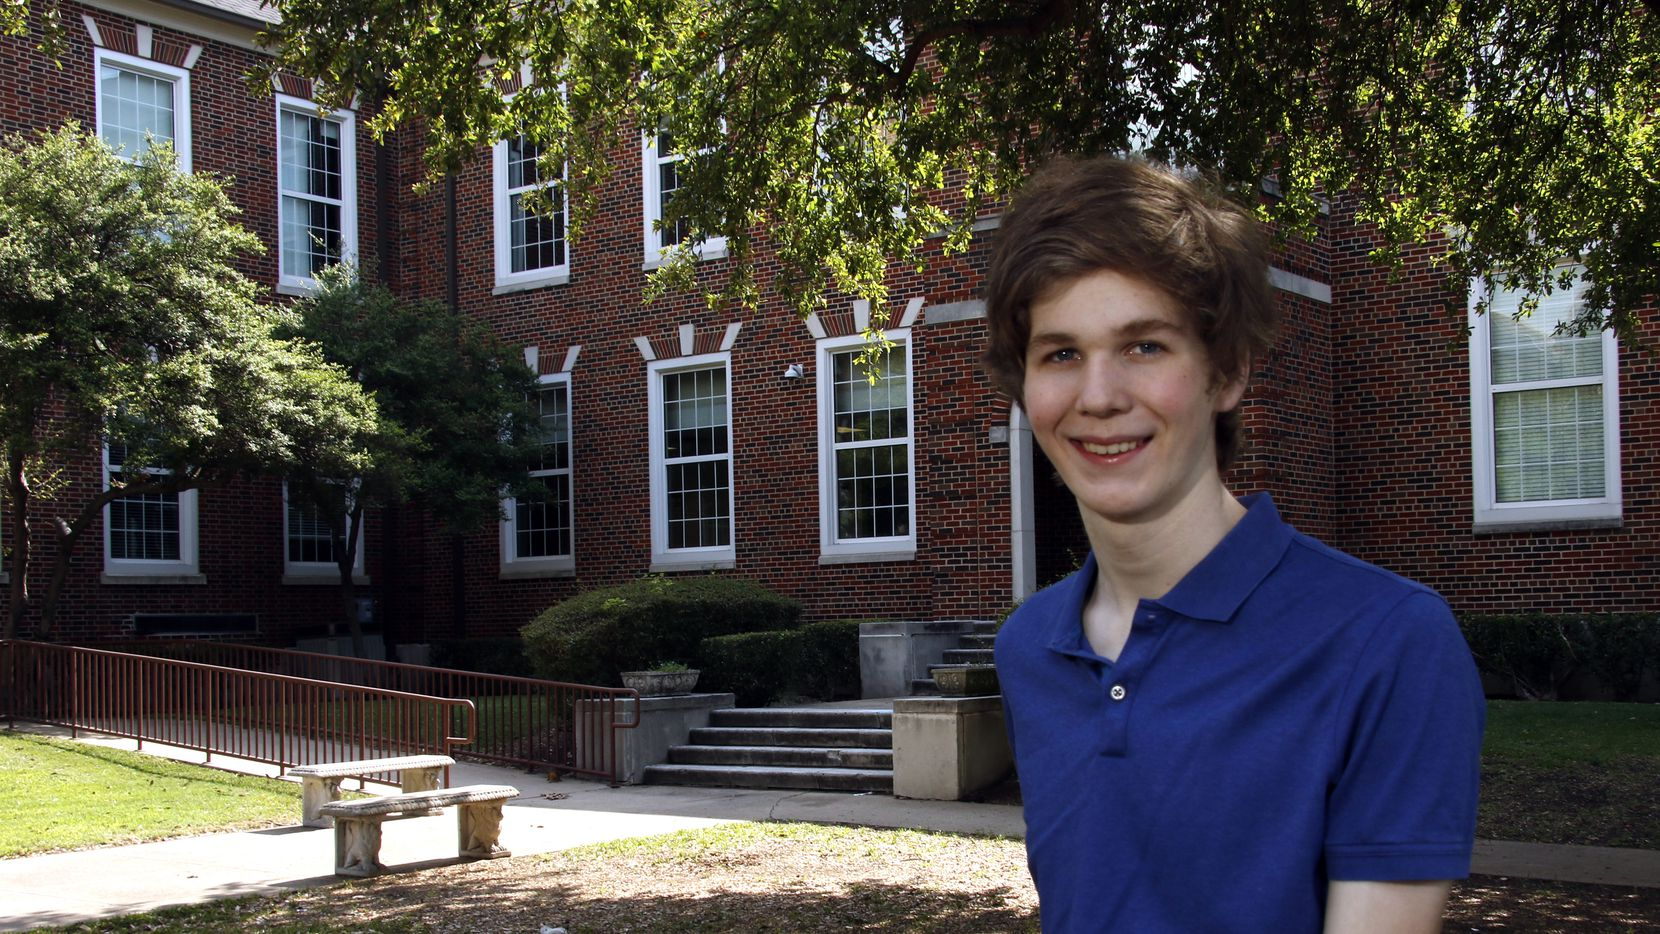 Matt McCall, a 2020 graduate of Highland Park High School, suffered a stroke when he was junior. Luckily, the athlete and Eagle Scout new the symptoms and got to a hospital. He's headed to Emory University in Atlanta in the fall.